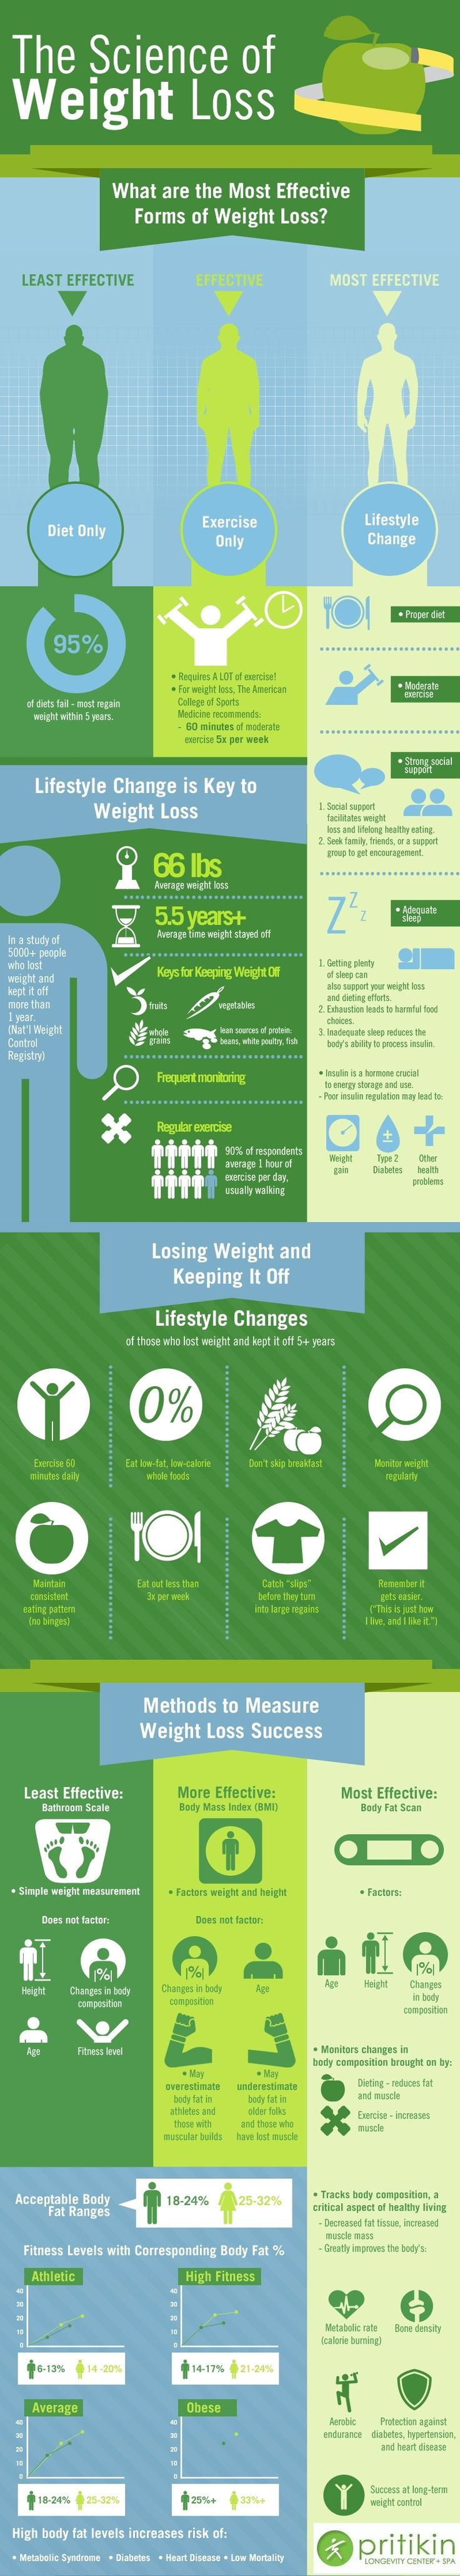 weight loss food: http://www.facefinal.com/2013/03/5-Essential-Steps-In-Losing-Weight-For-Optimum-Health.html